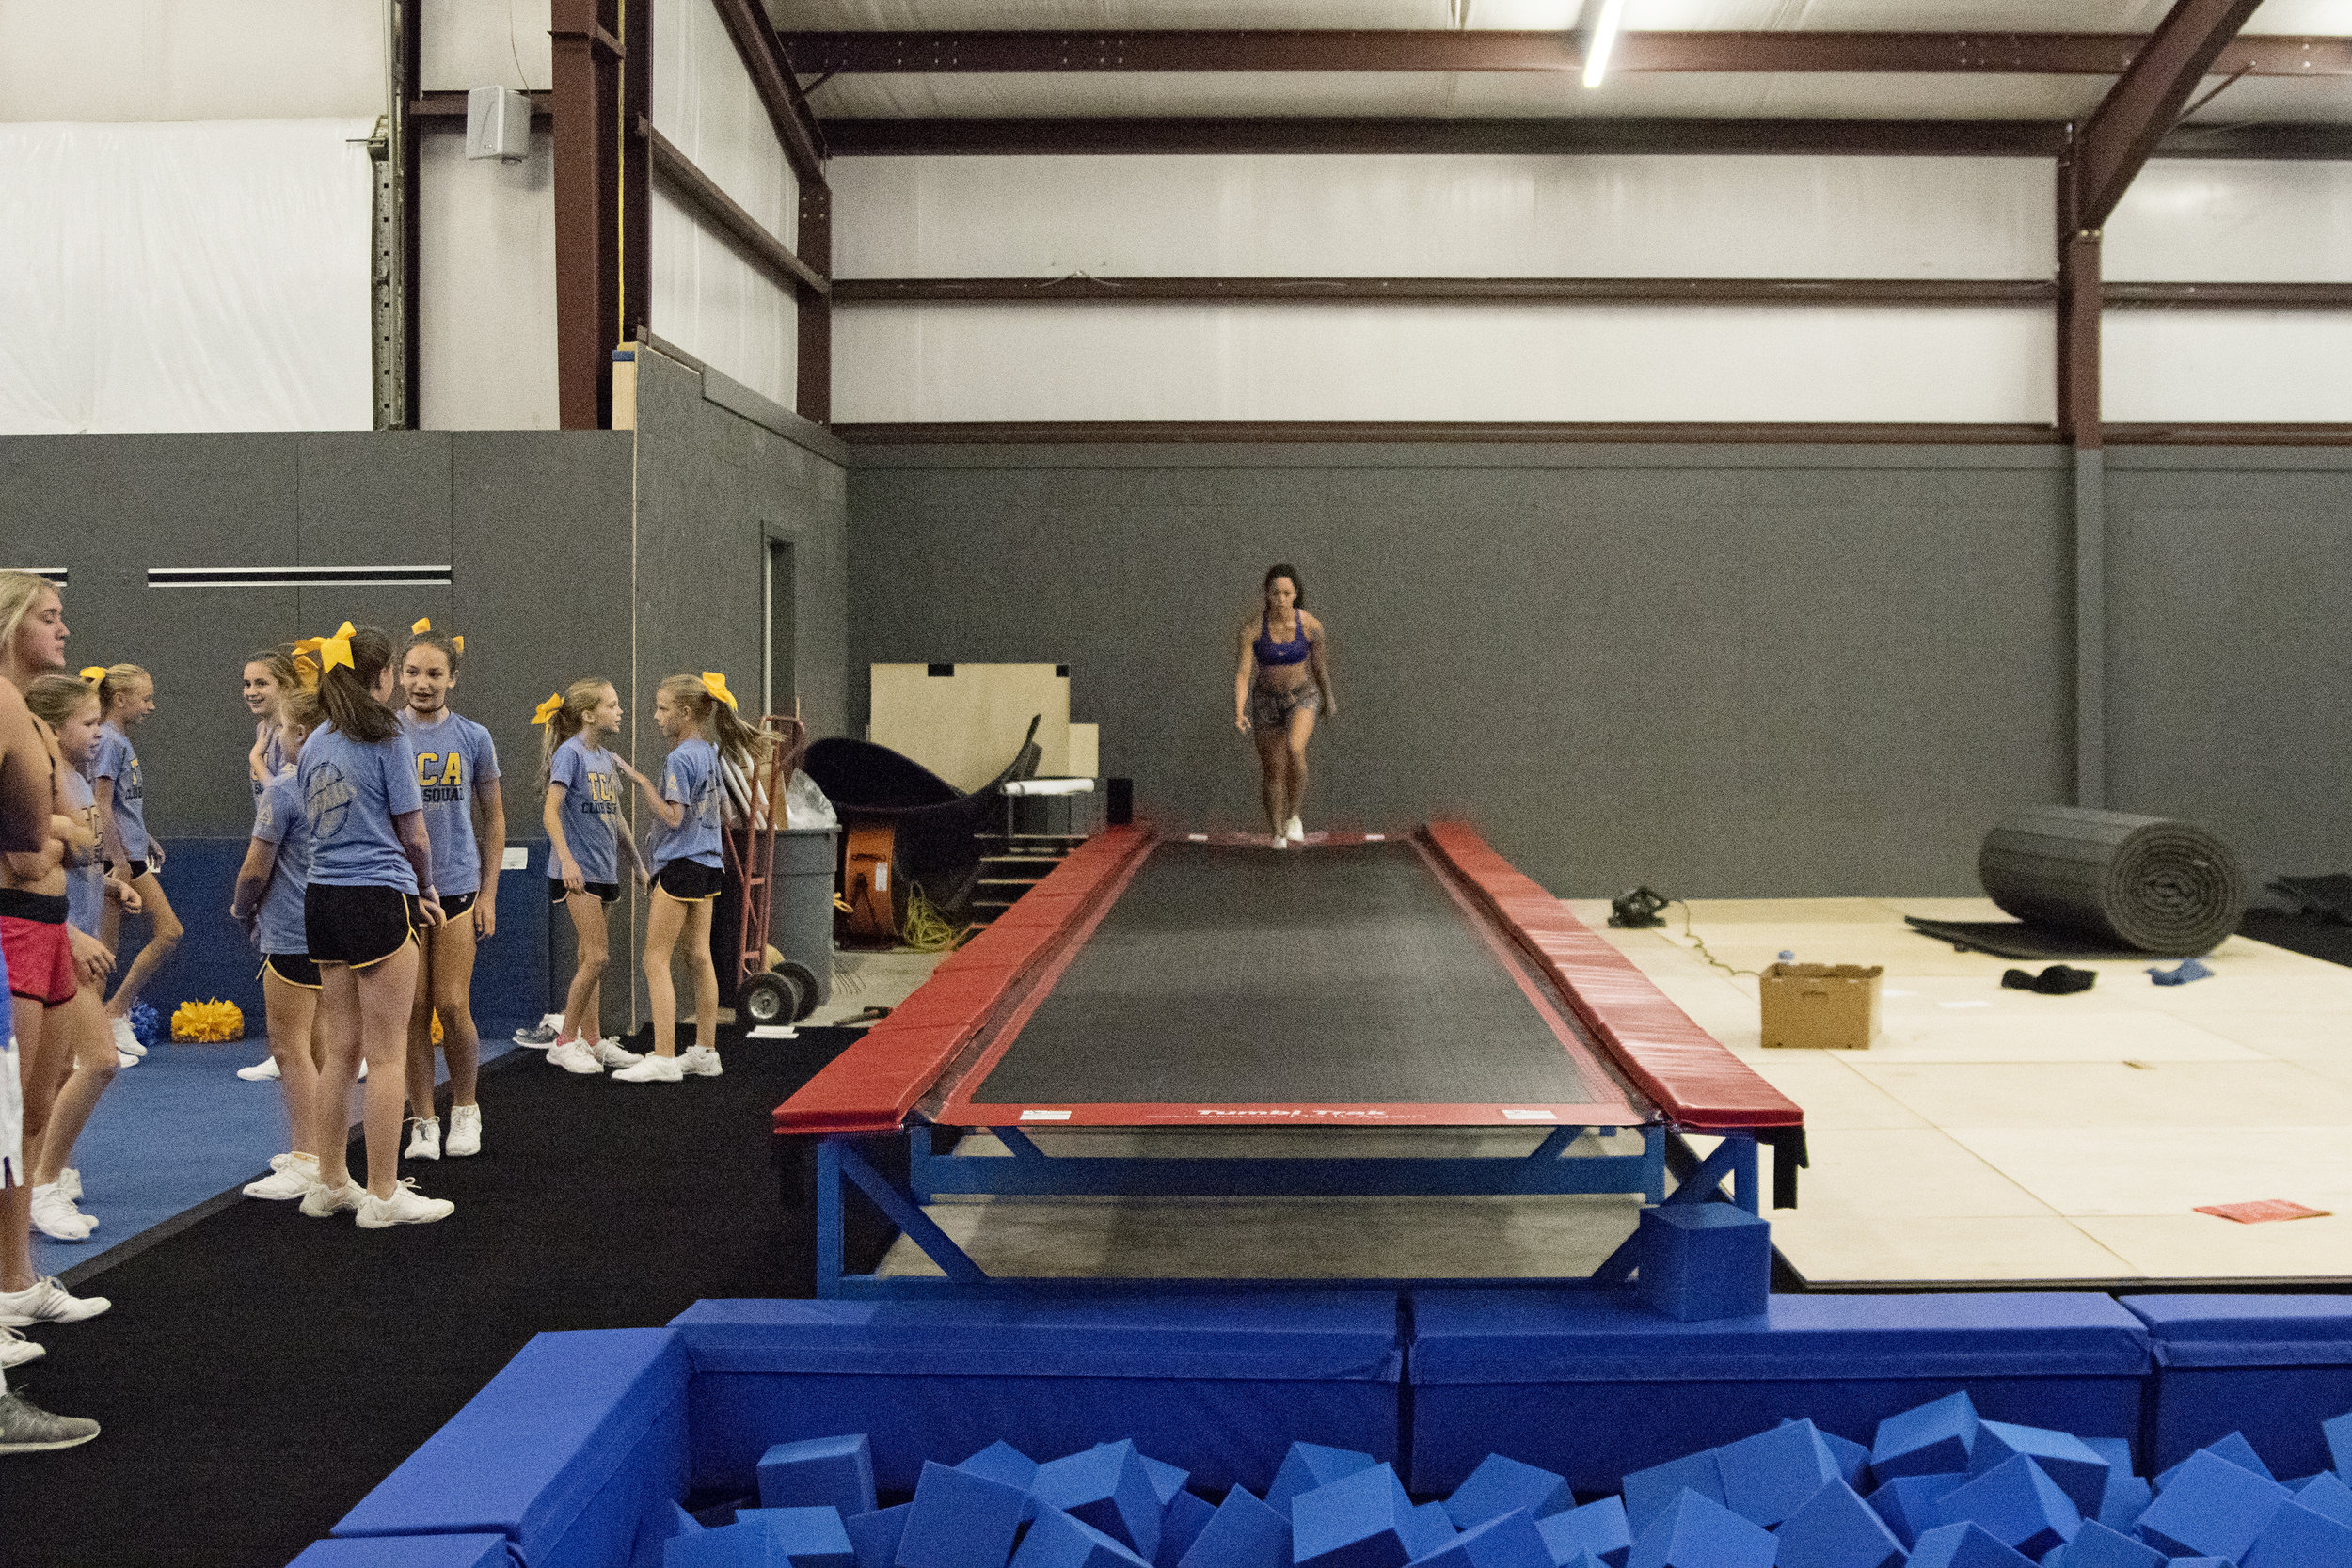 Only Cheer Gym Foam Pit in North Louisiana